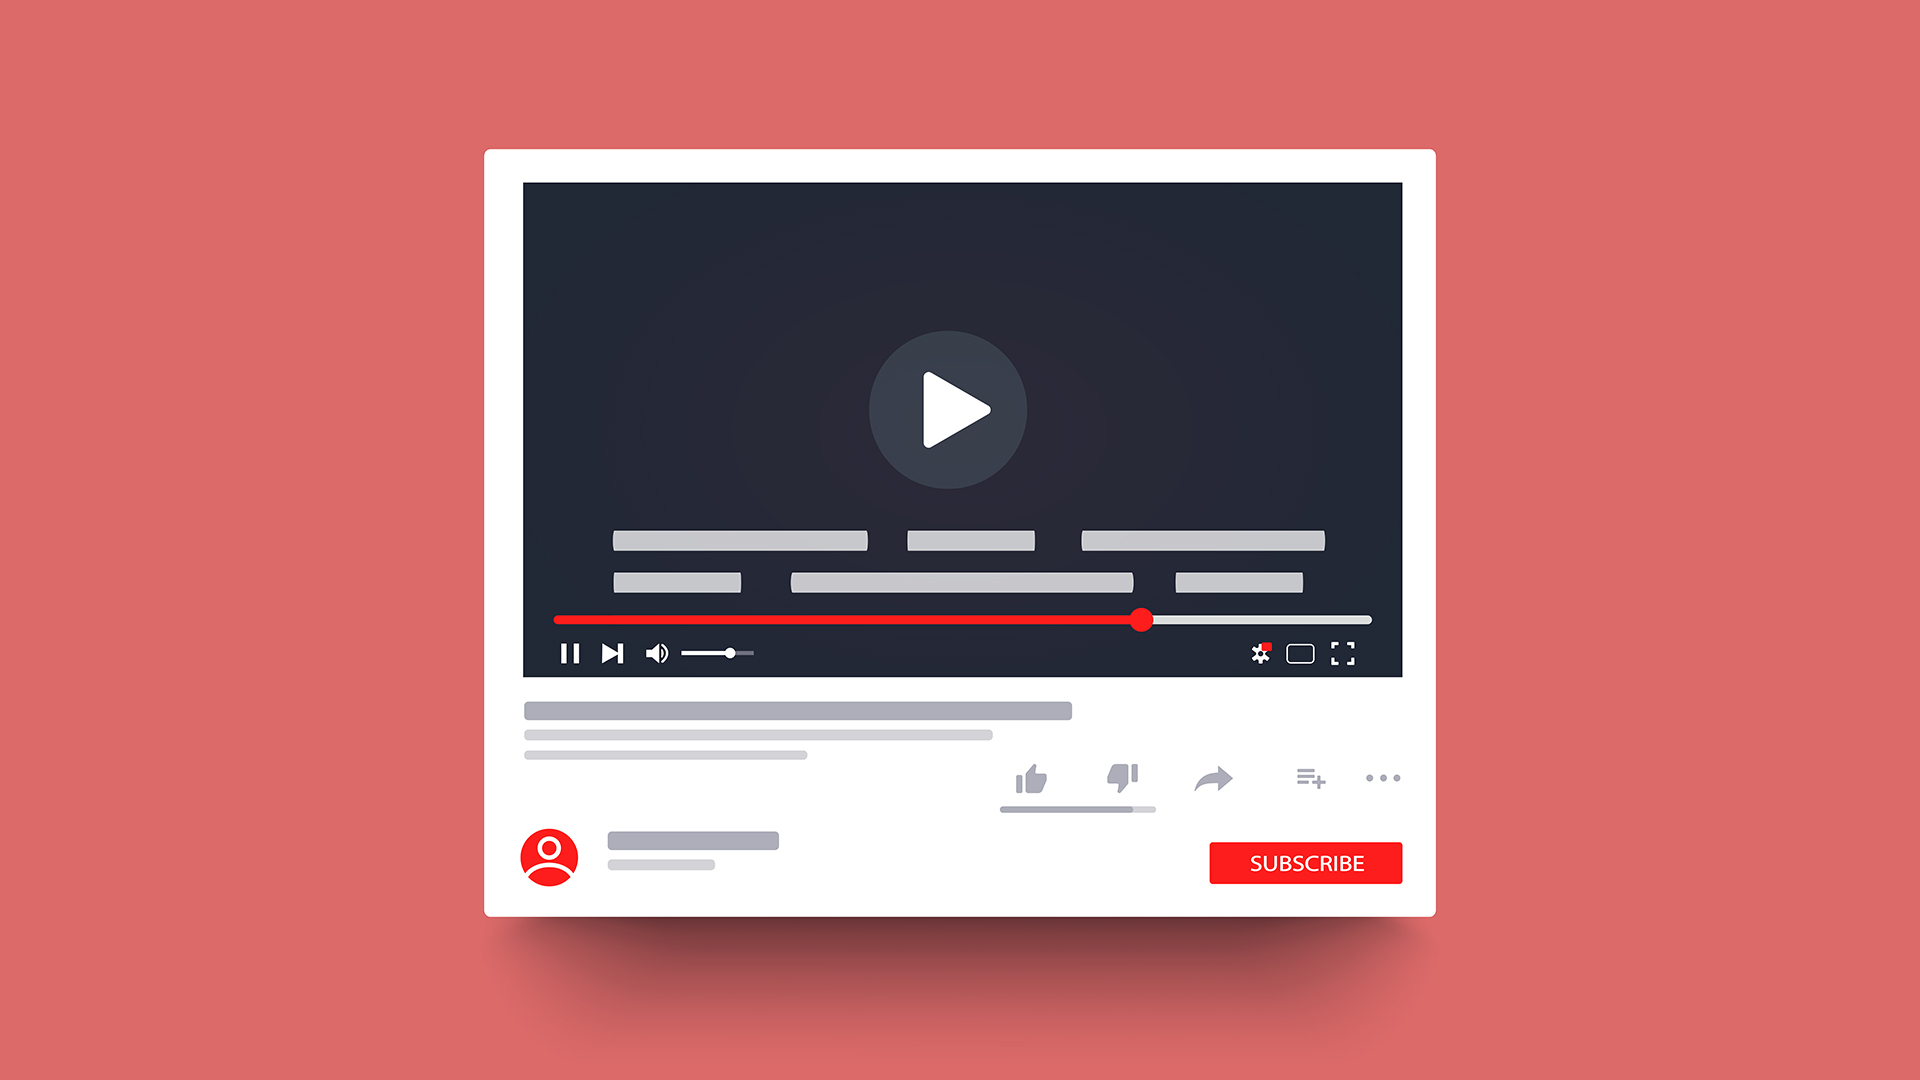 Subtitles YouTube: How to add subtitles to YouTube videos?